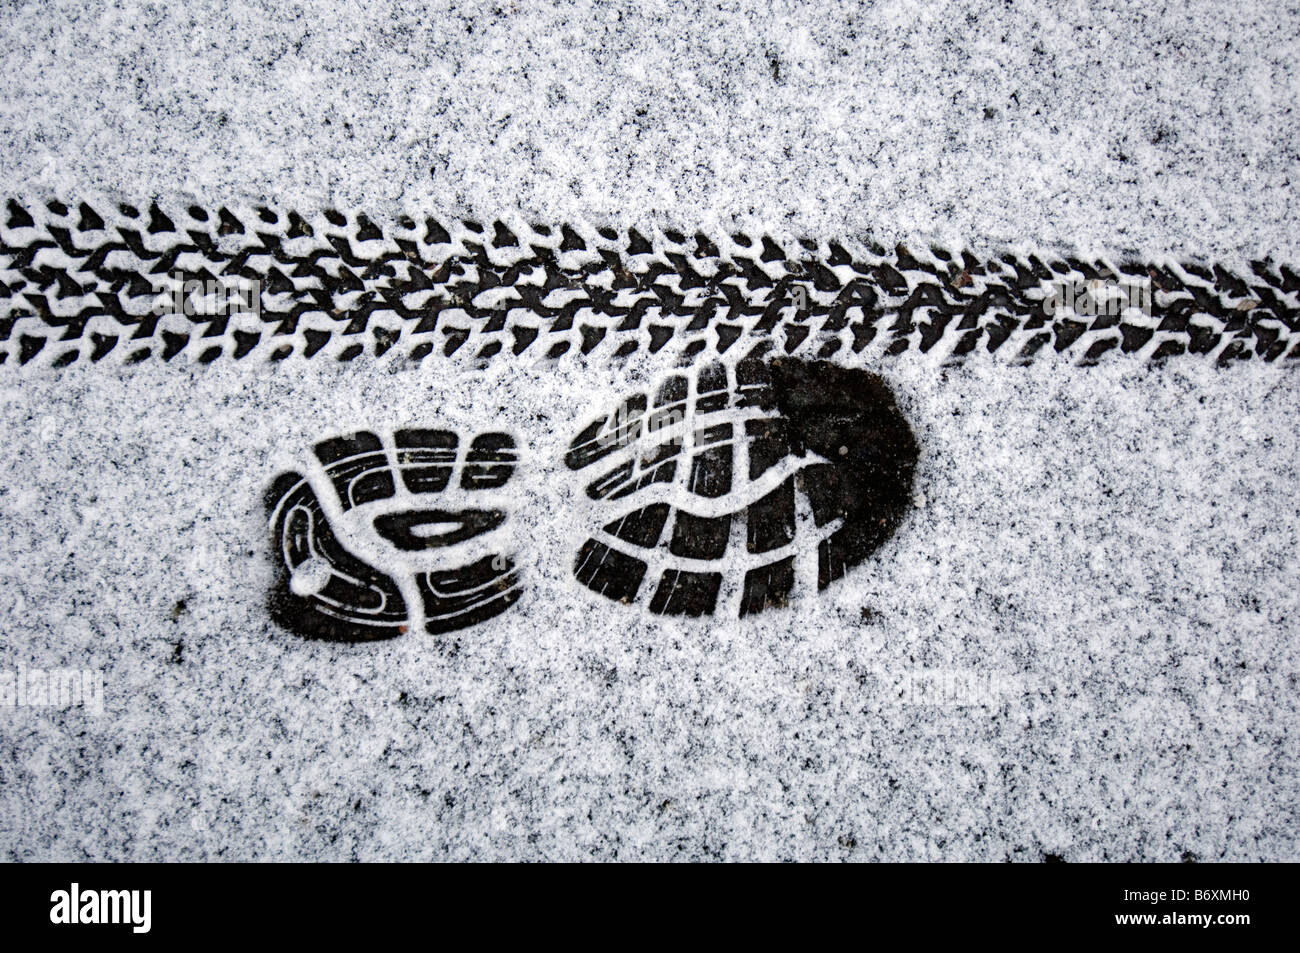 tyre and trainer tracks left in the snow by runners and cyclists defying the weather. - Stock Image